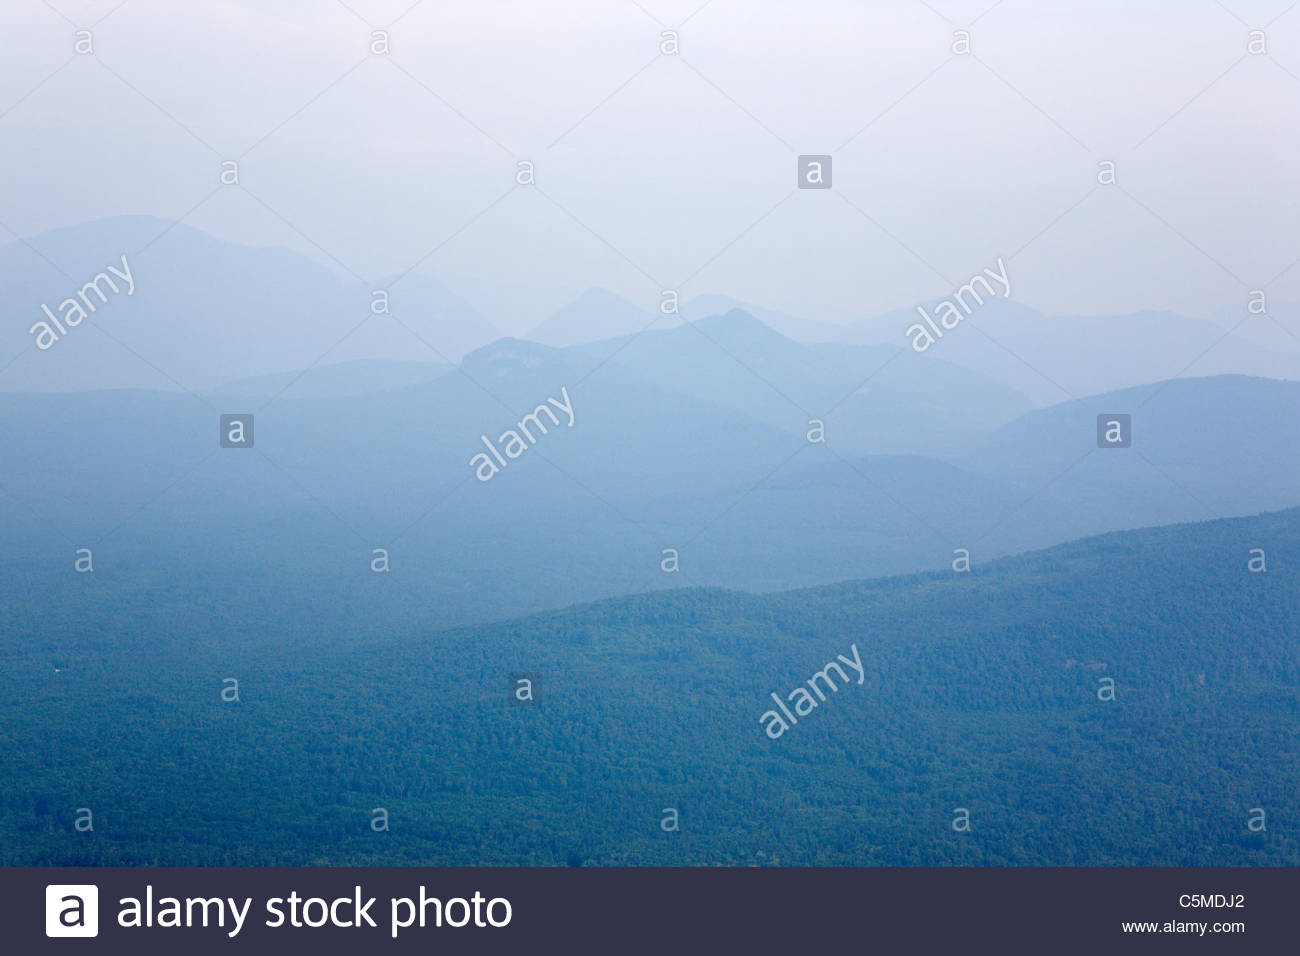 Hazey mountain scene on a hot and humid day from Middle Sister Trail in the White Mountains, New Hampshire USA. - Stock Image